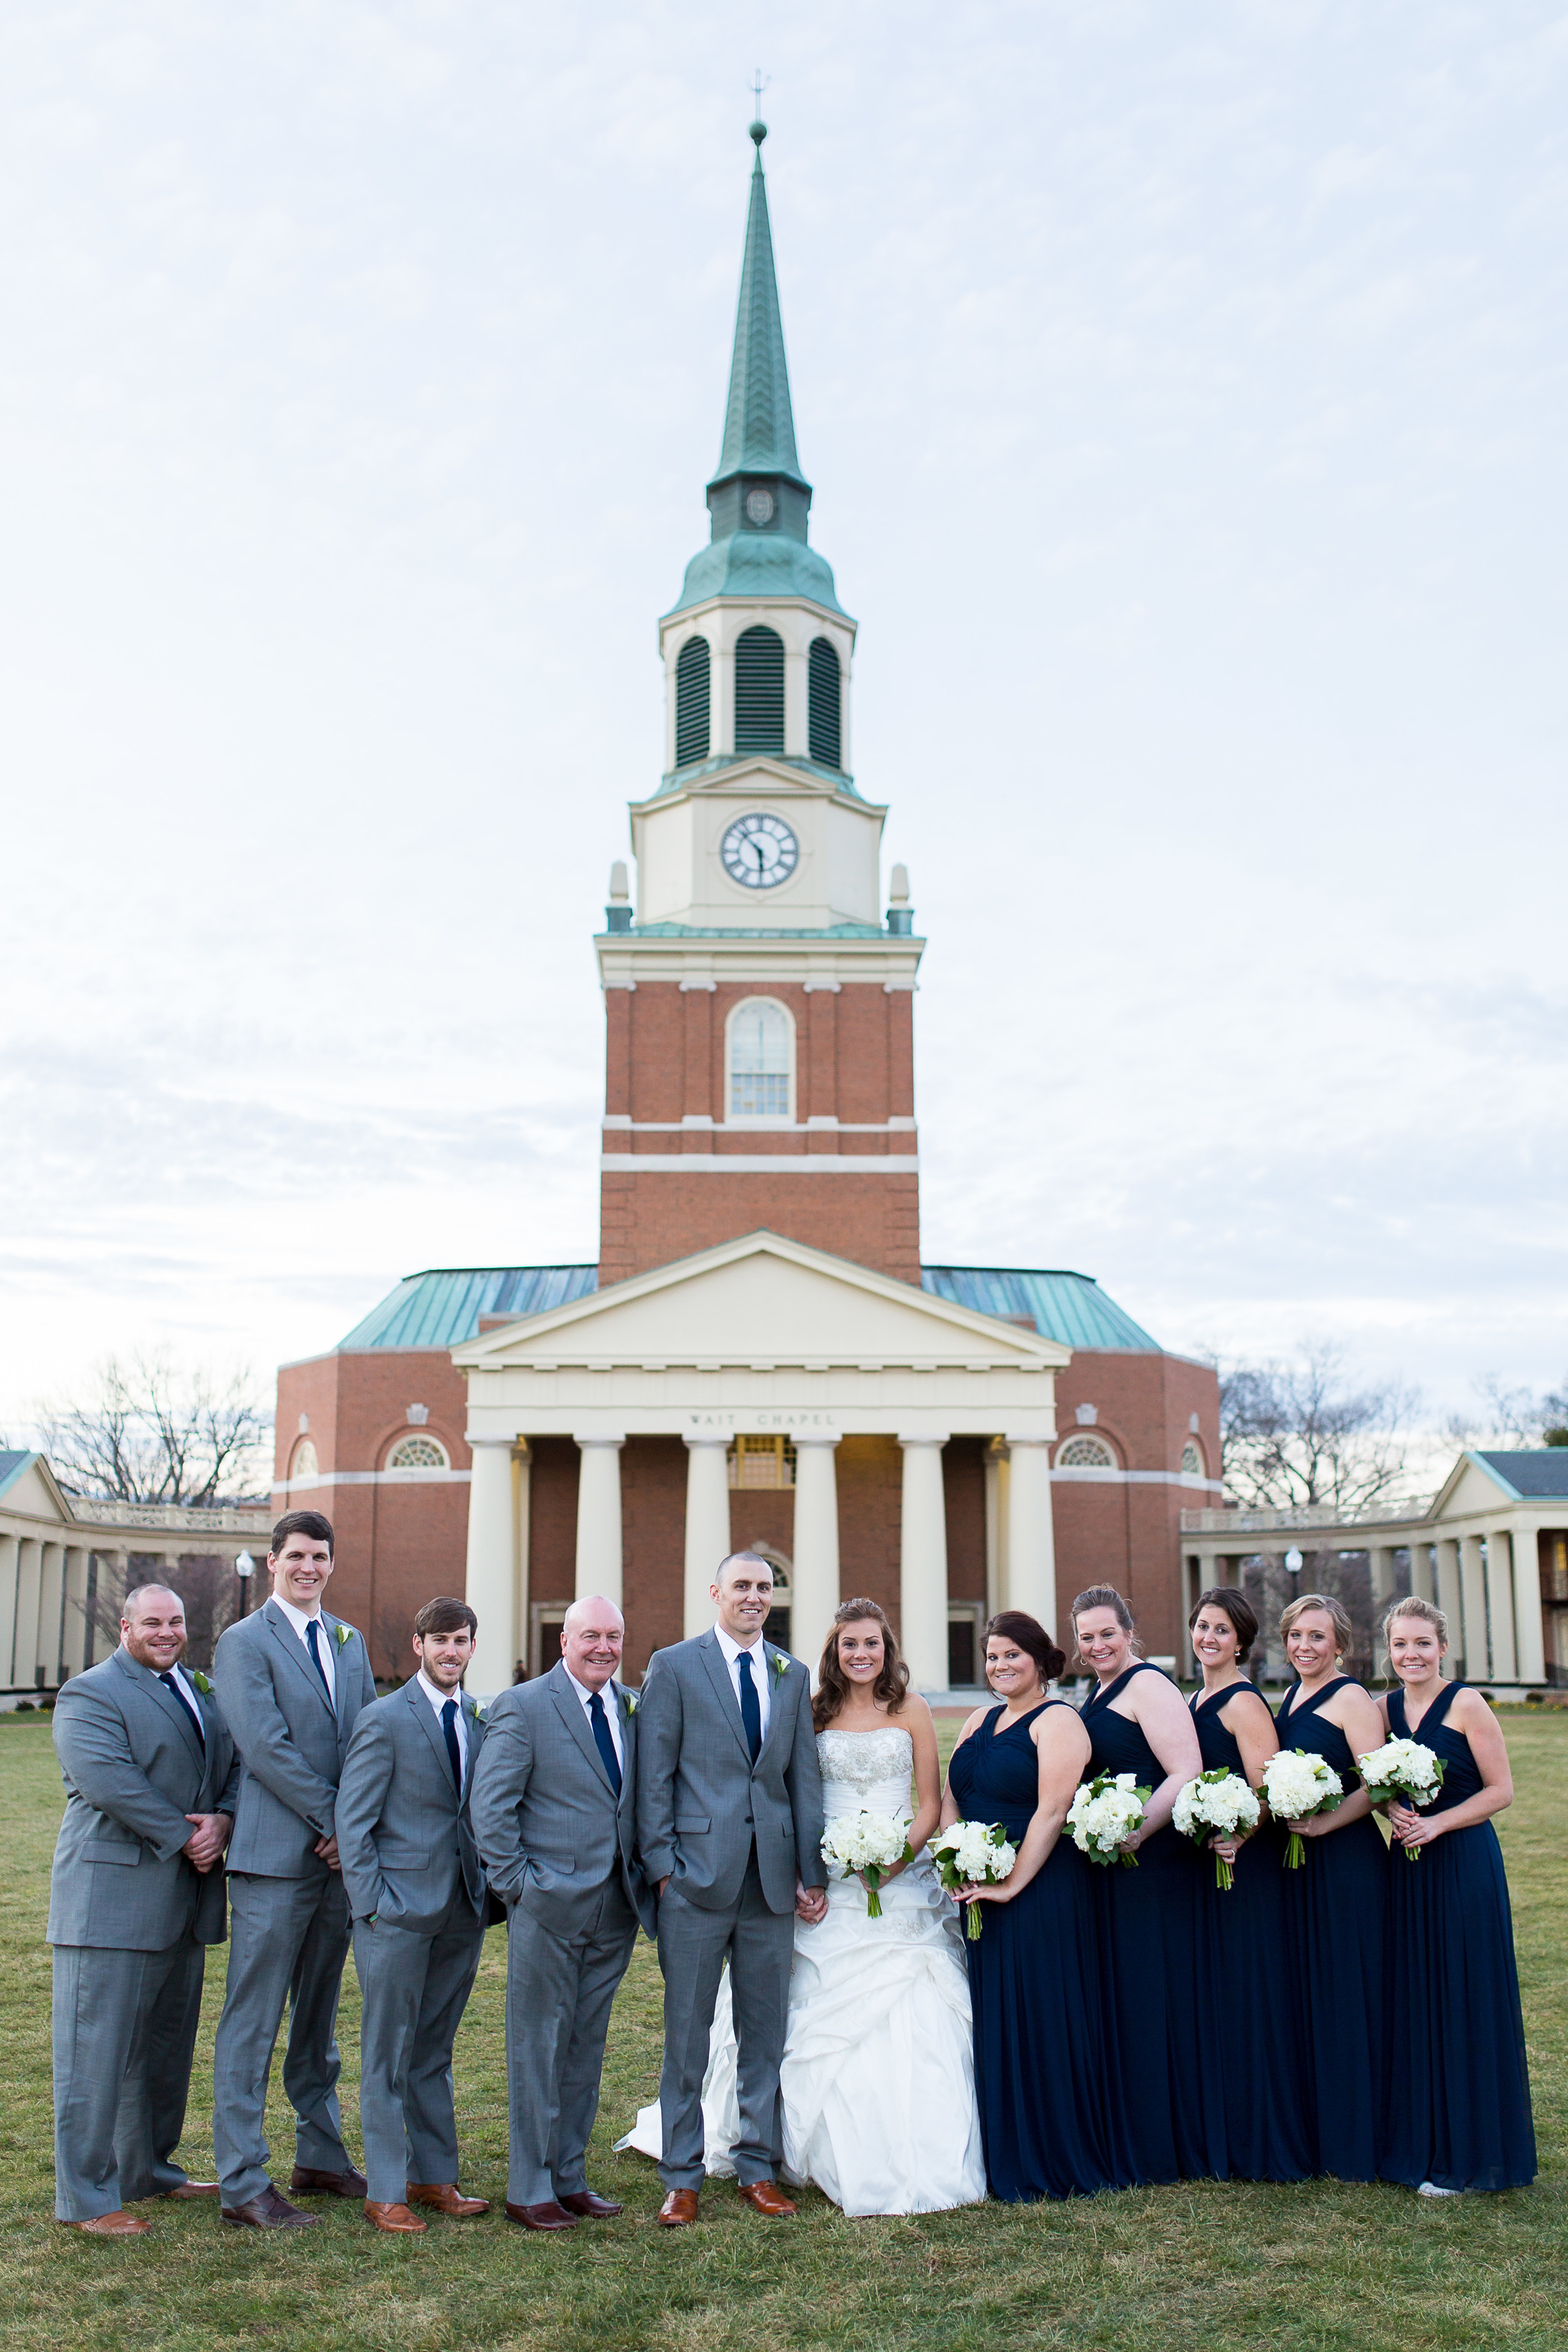 Michigan Kansas City and Phoenix Wedding photographer Erin Evangeline Photography at Wait Chapel Wake Forest